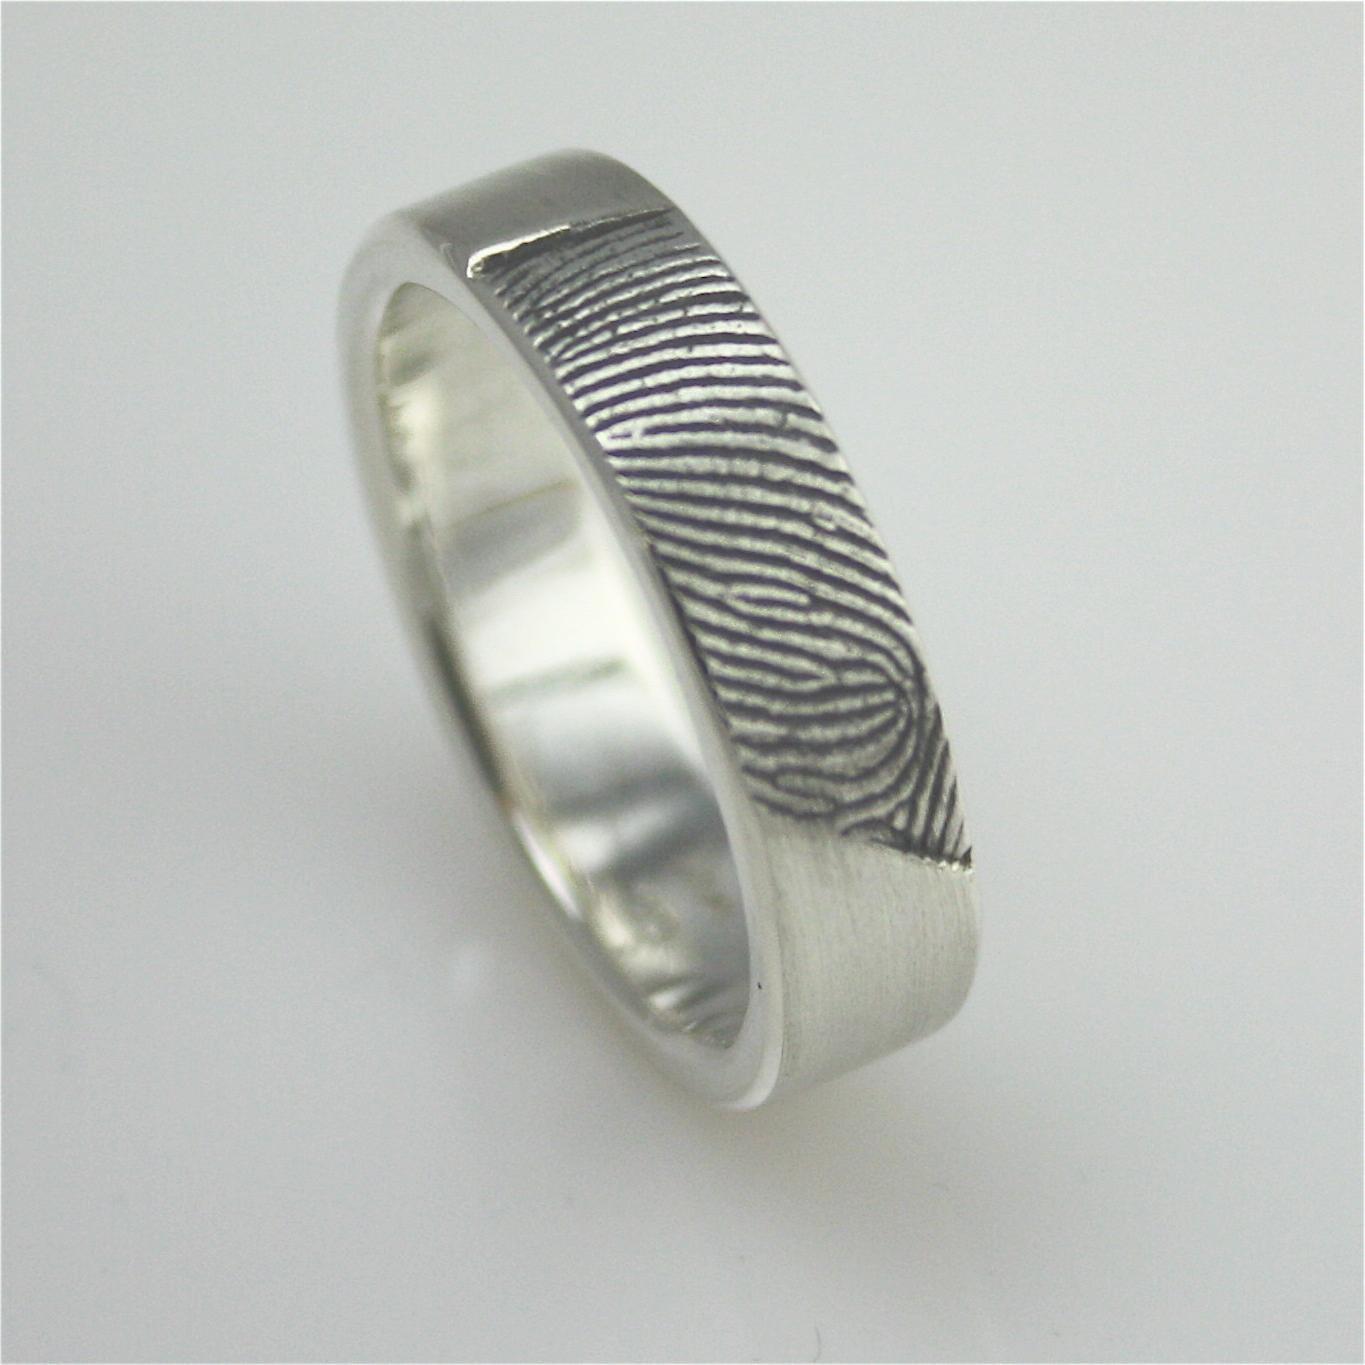 Fingerprint ring - reviews